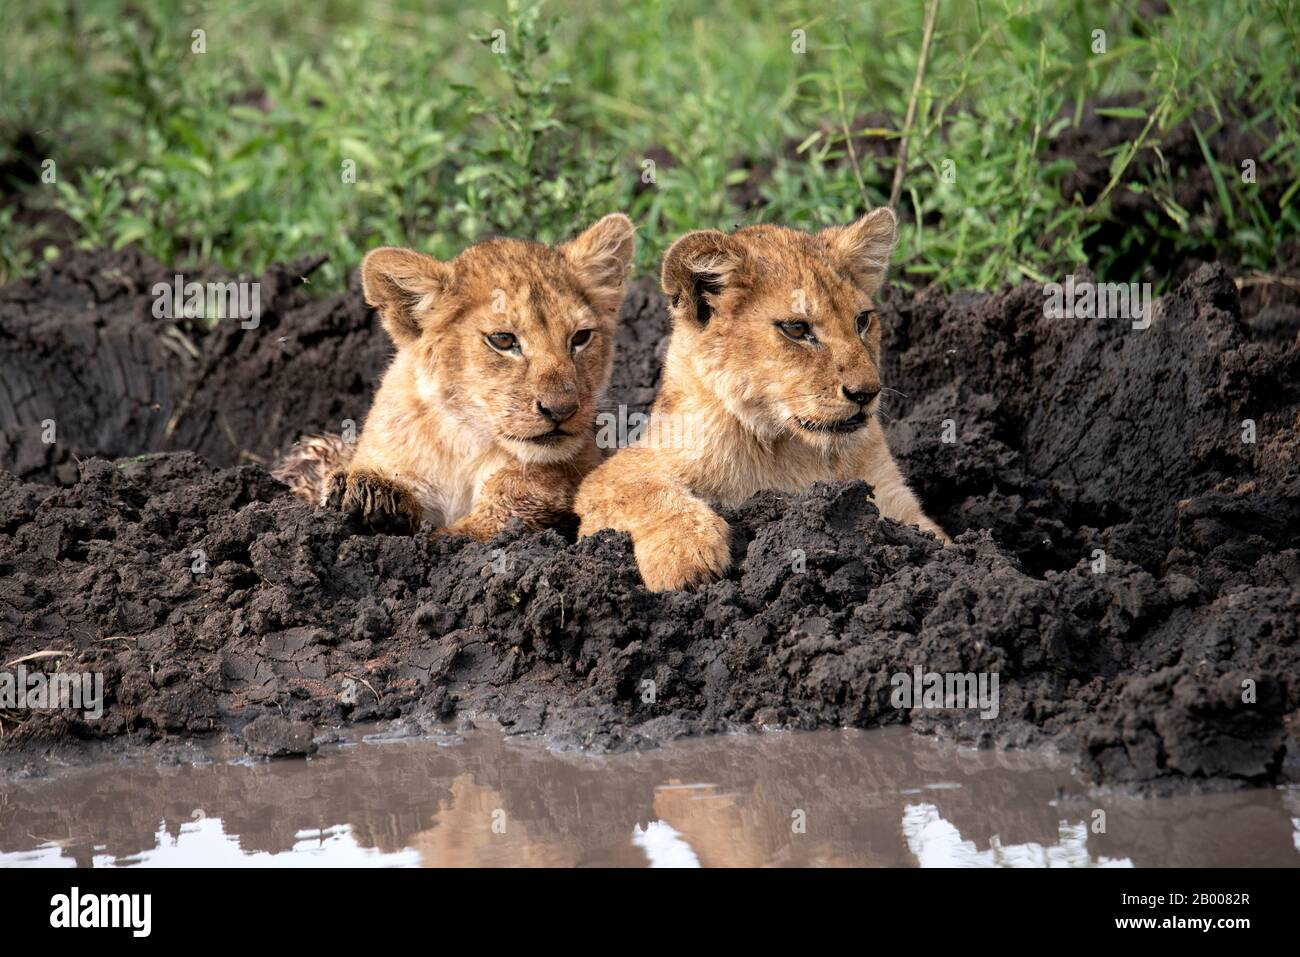 Lion cubs cooling down in the mud Stock Photo